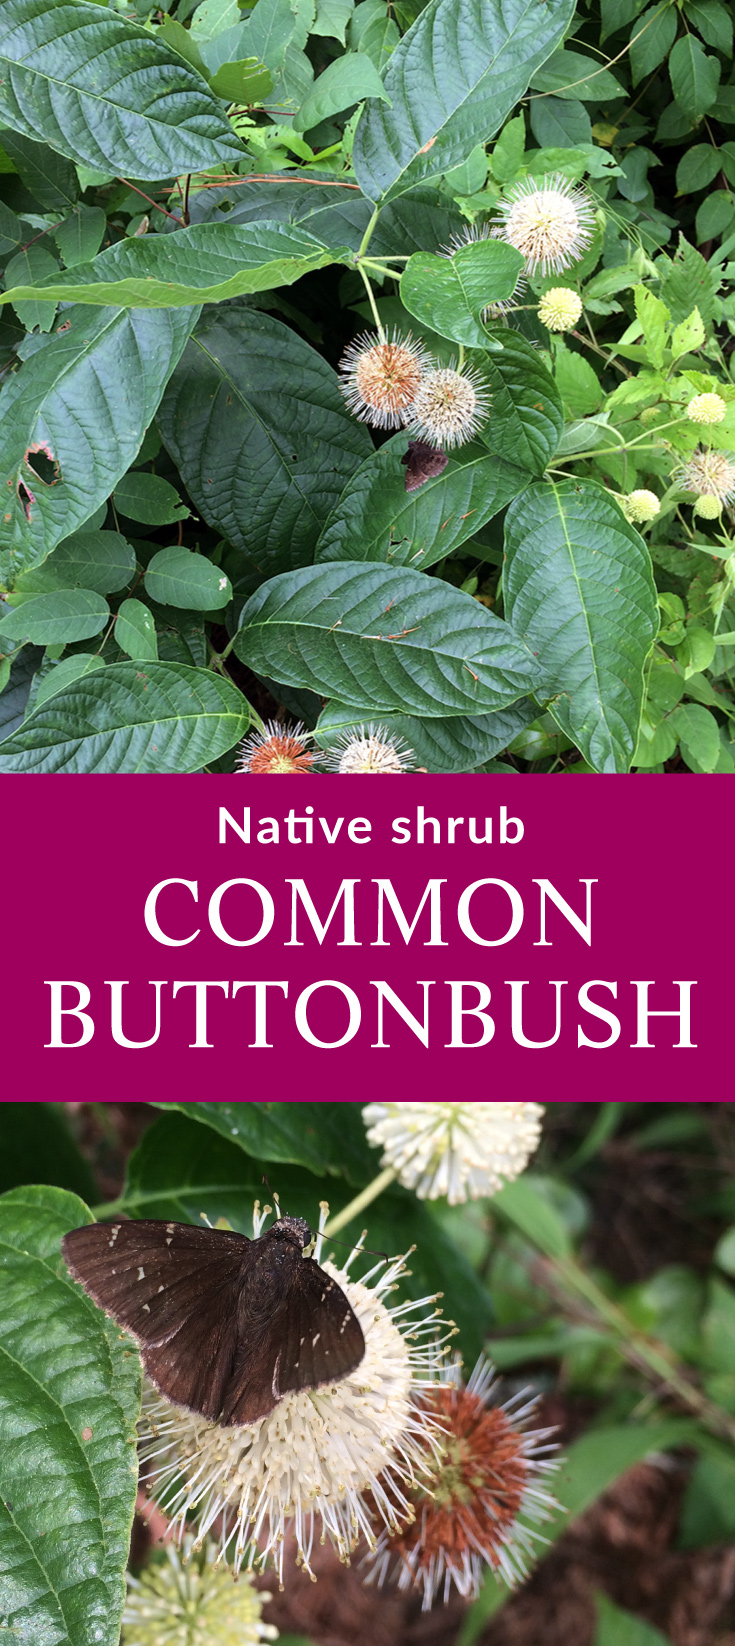 Buttonbush - native plant (Cephalanthus occidentalis). Buttonbush is perfect for planting in those spots of wet soil in your garden. The flowers are these cool balls of florets and attract bees and butterflies.